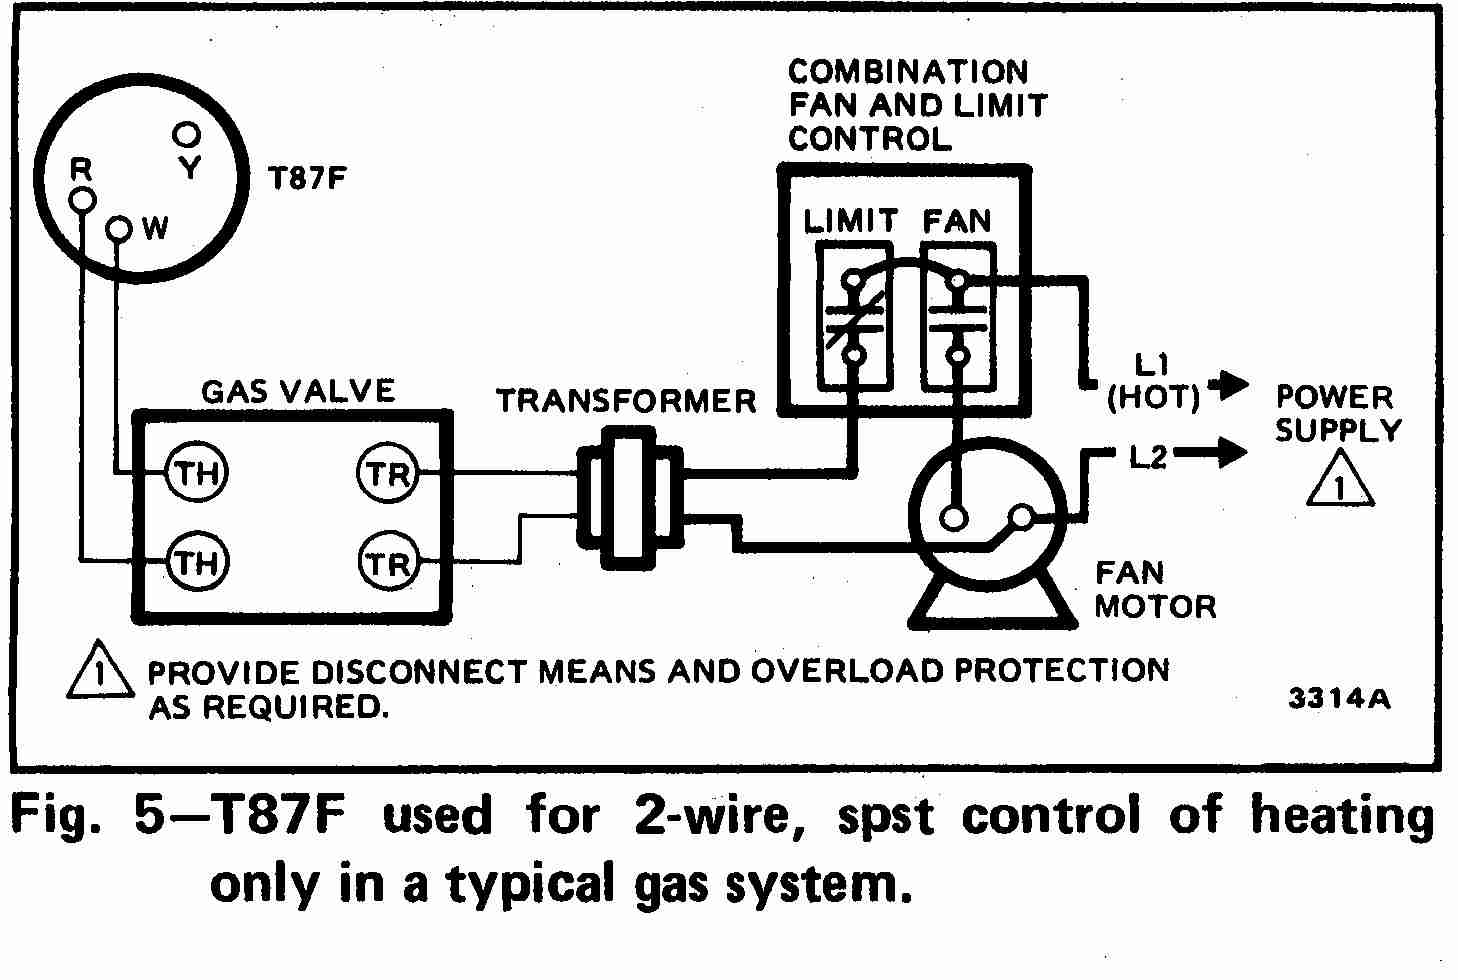 TT_T87F_0002_2Wg_DJF dayton thermostat wiring diagram rv furnace wiring diagrams LuxPro Thermostat Manual at aneh.co